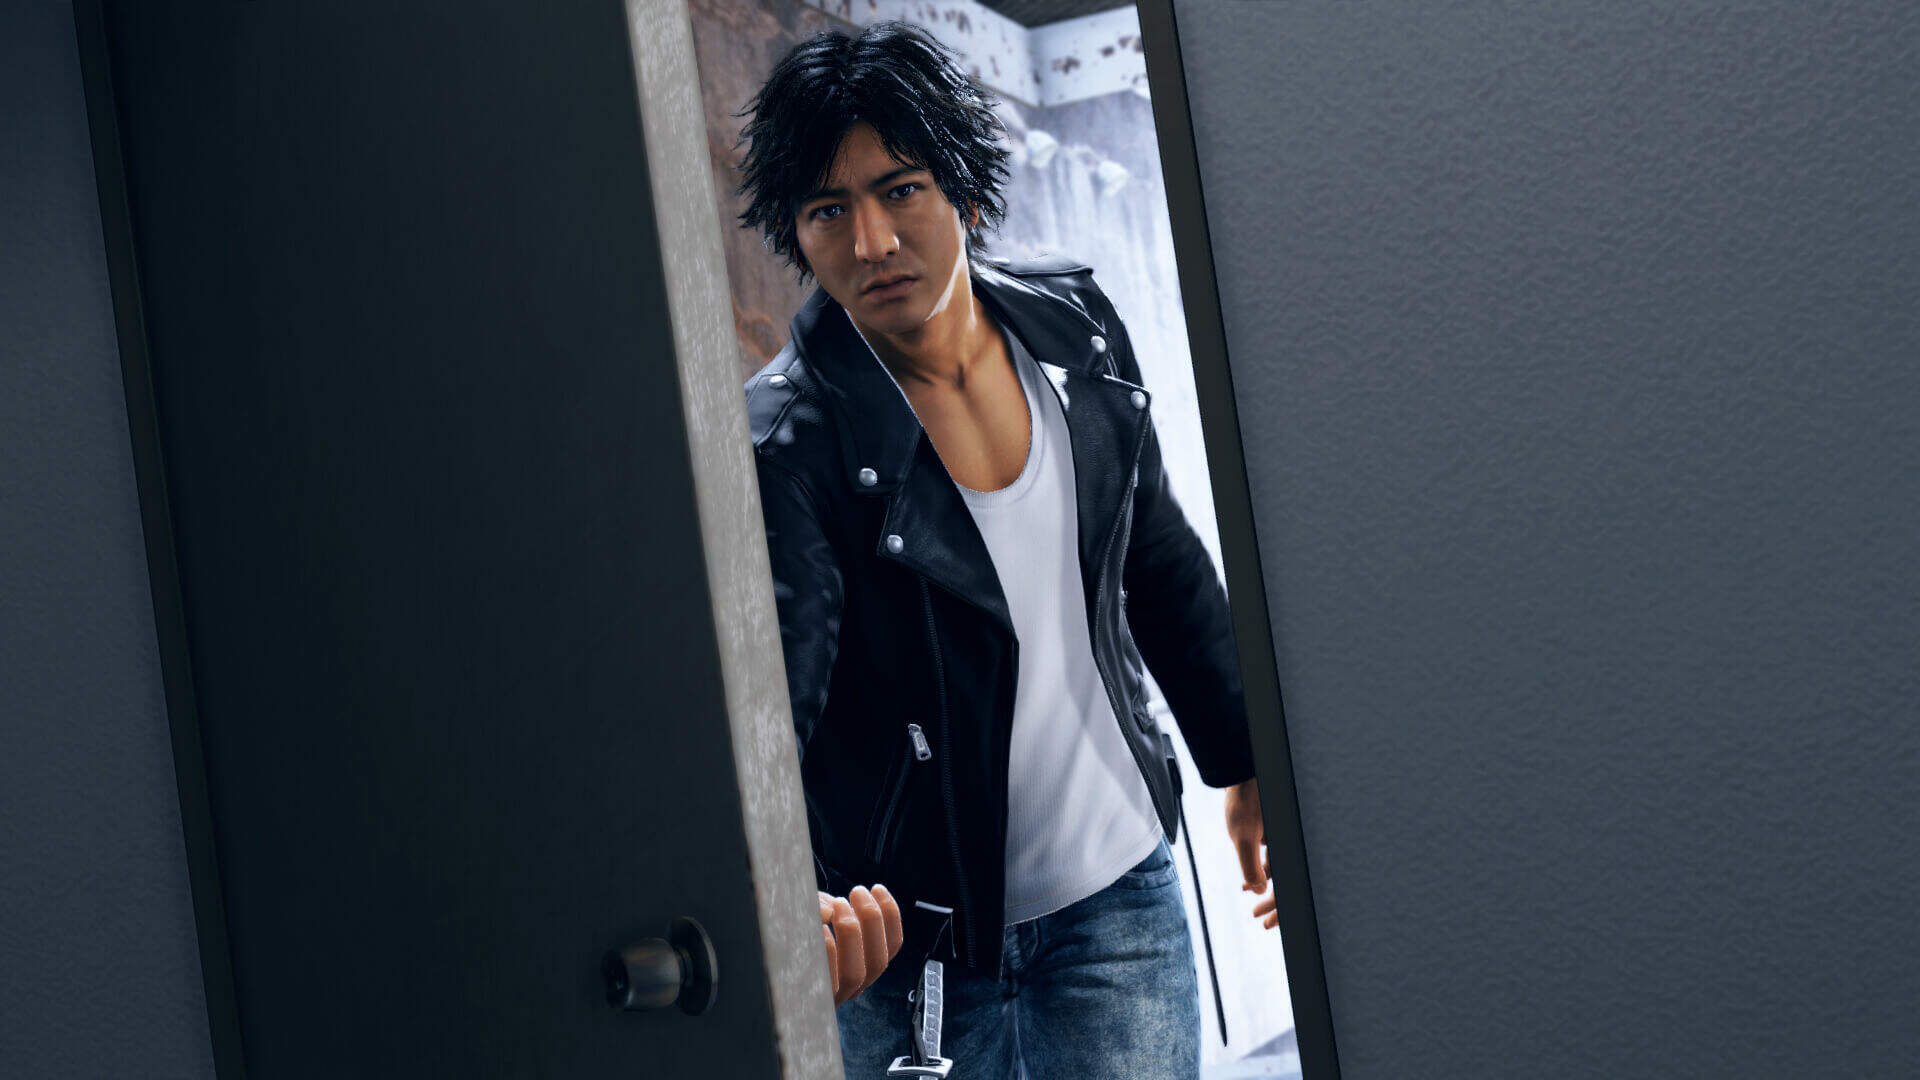 Judgment Voice Actors - Who are the Voice Cast Behind Judgment?